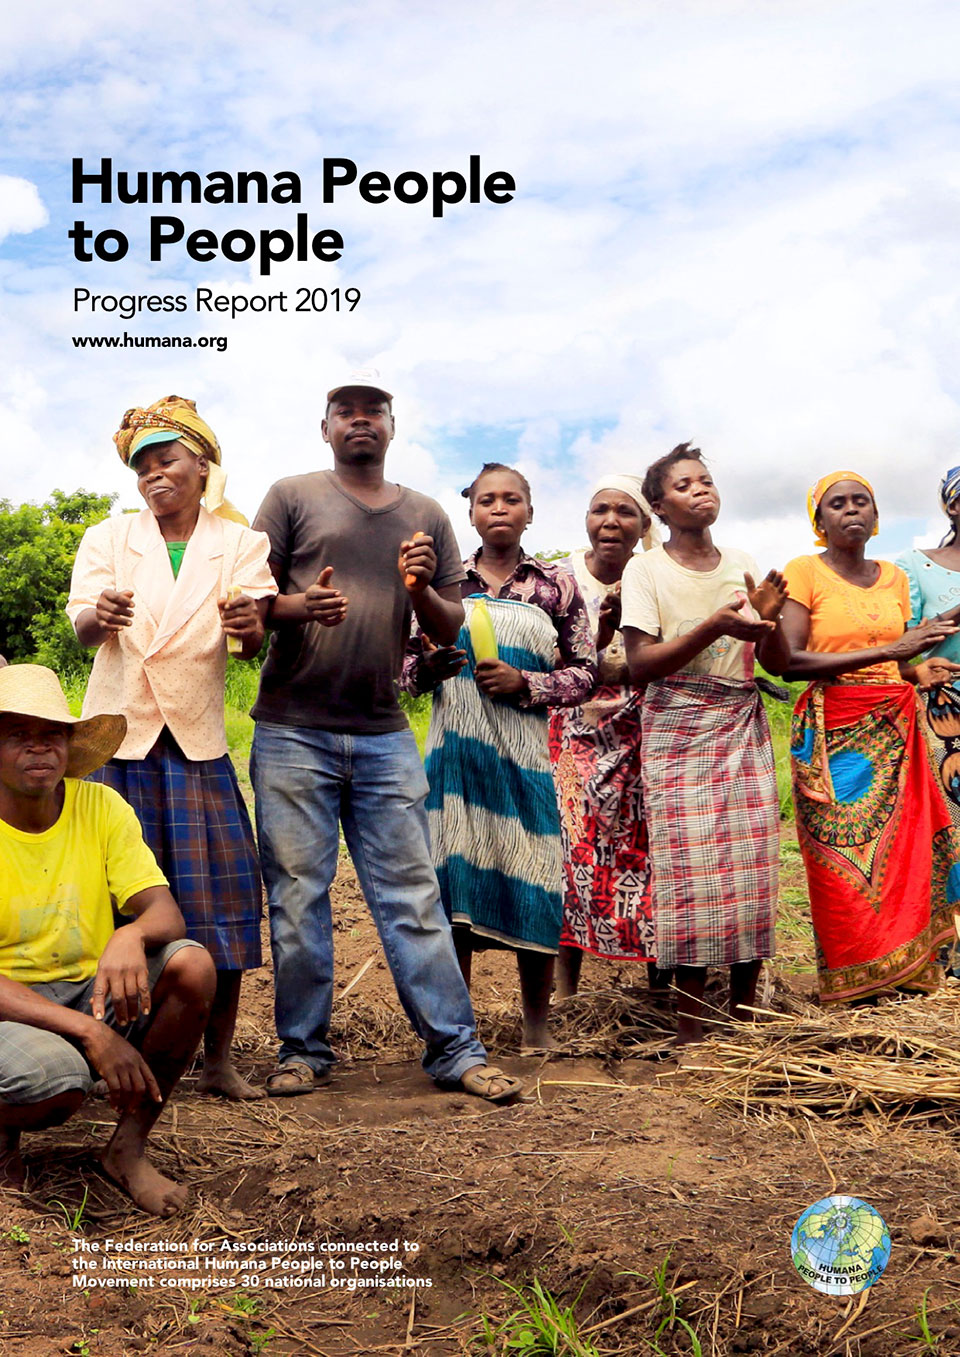 Launching the Humana People to People Progress Report 2019